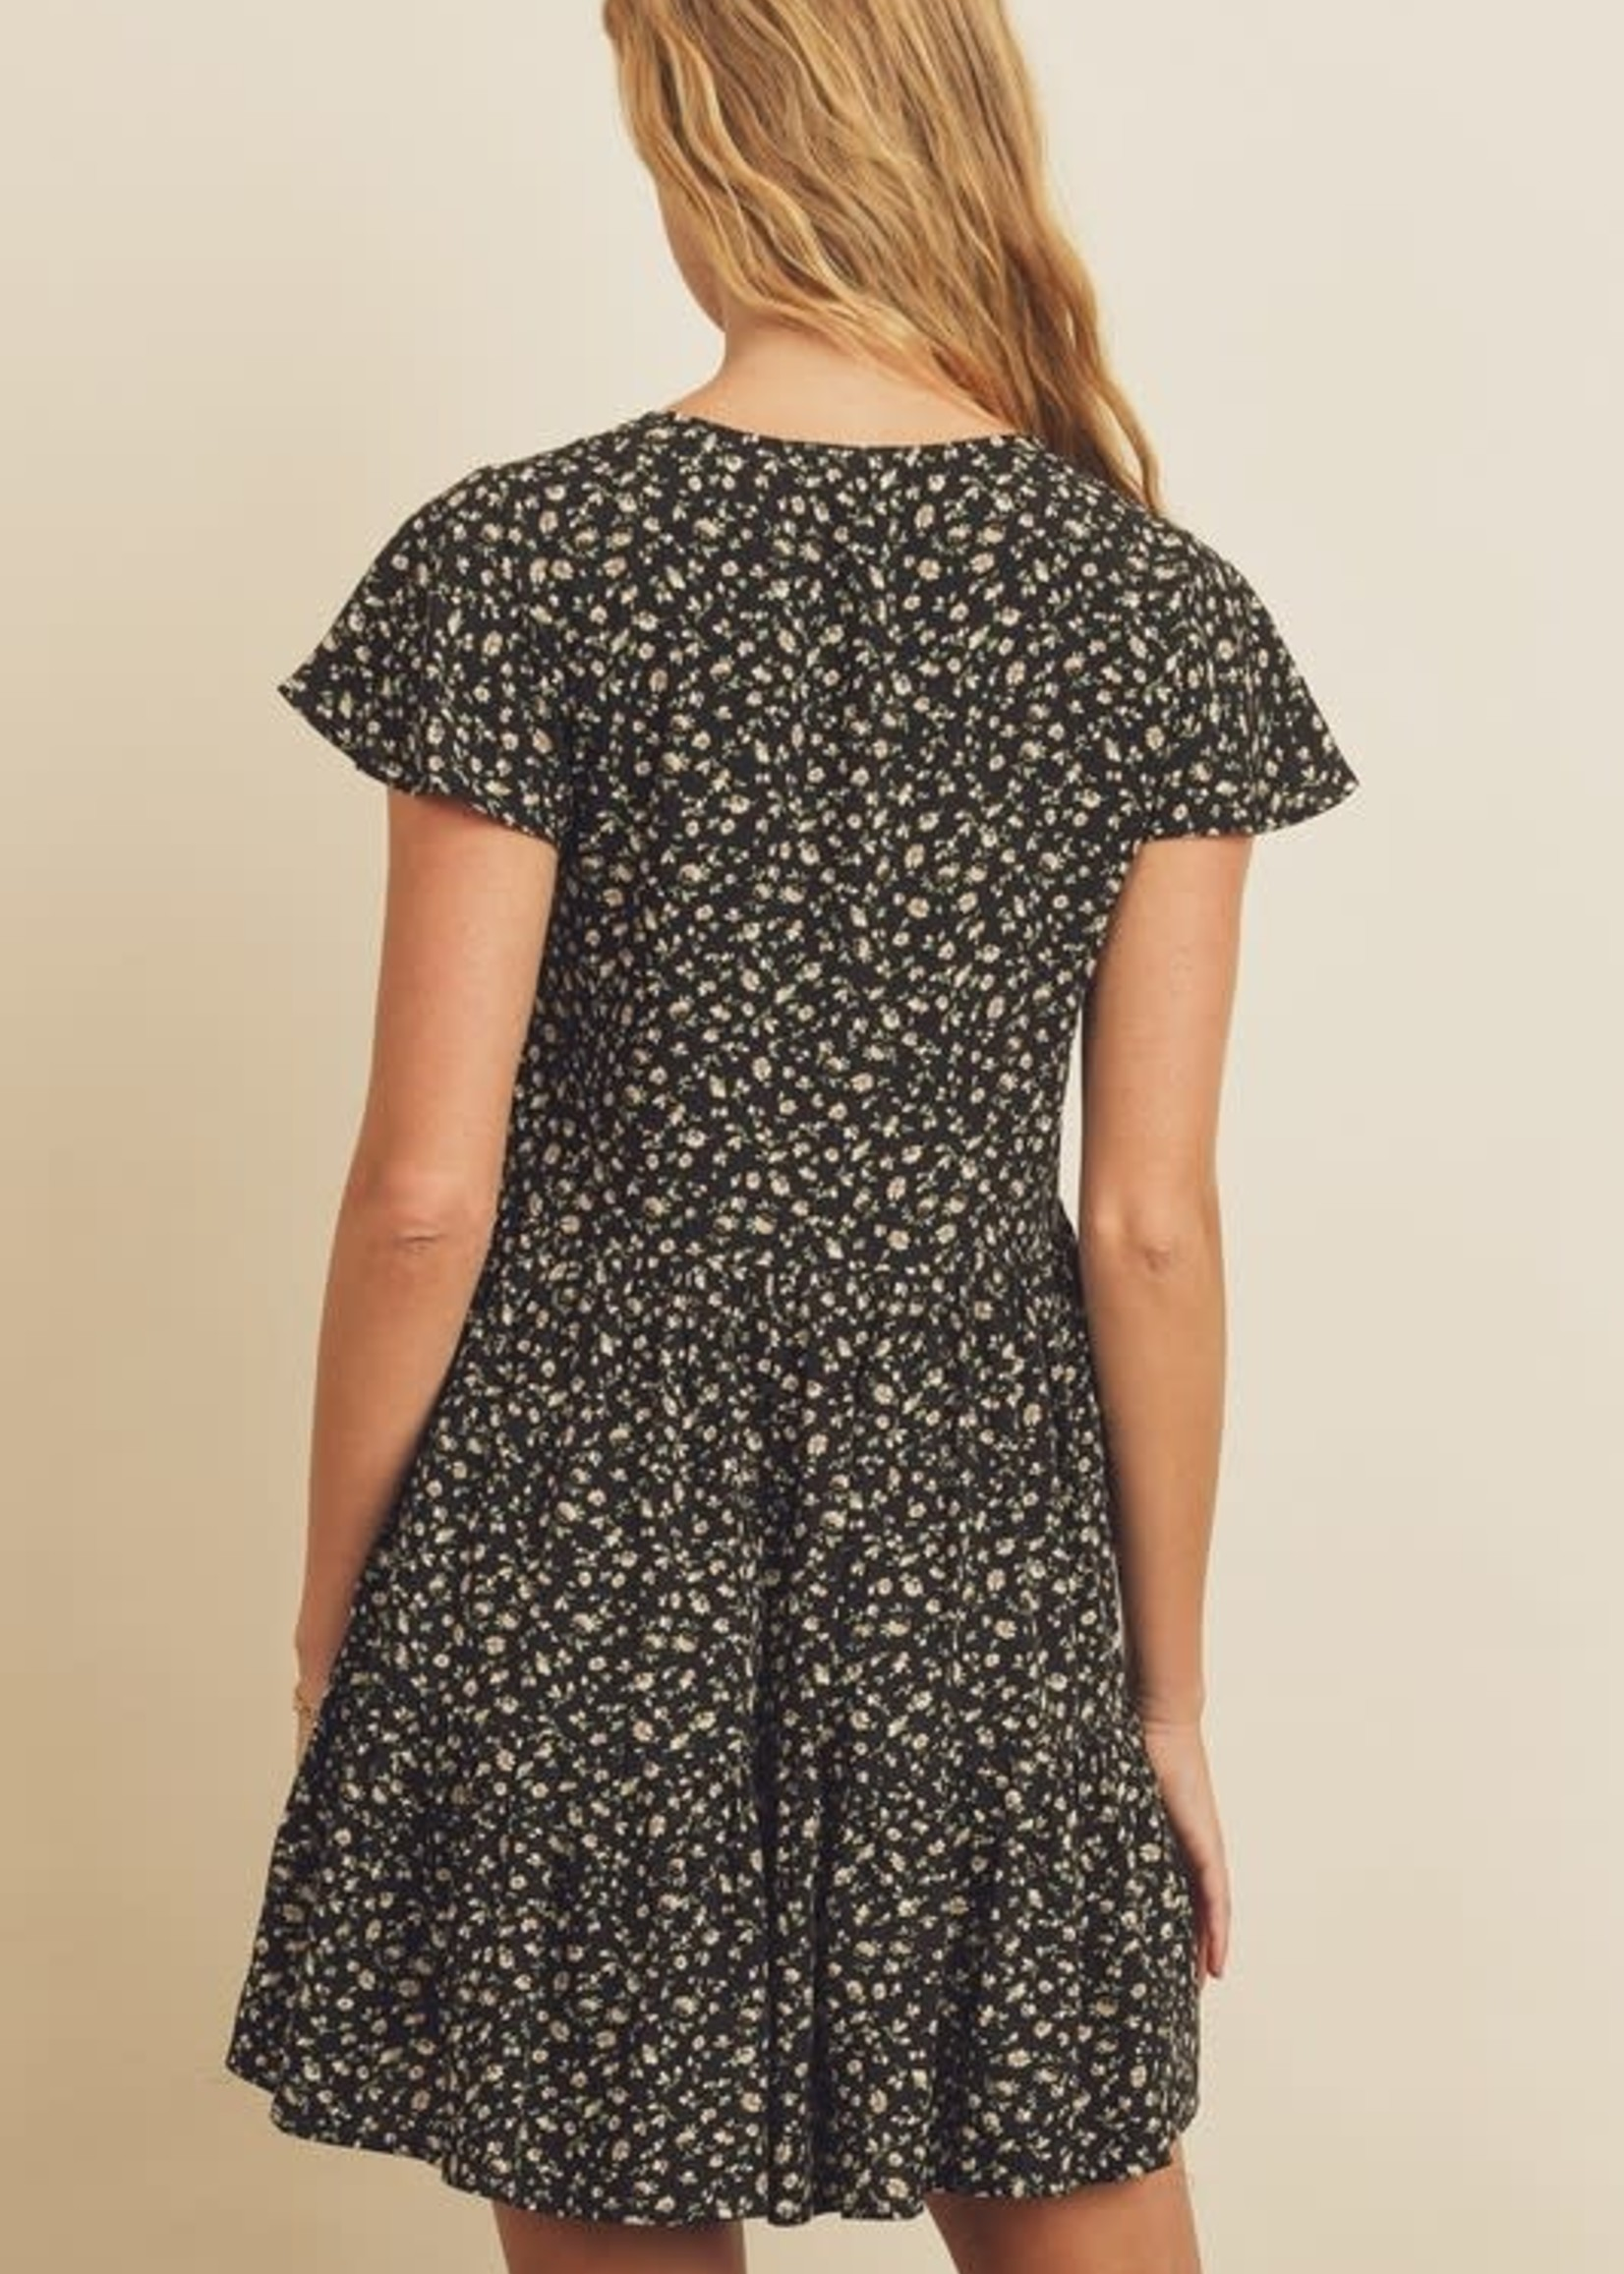 Ditsy Floral Tiered Dress - Black Mutli